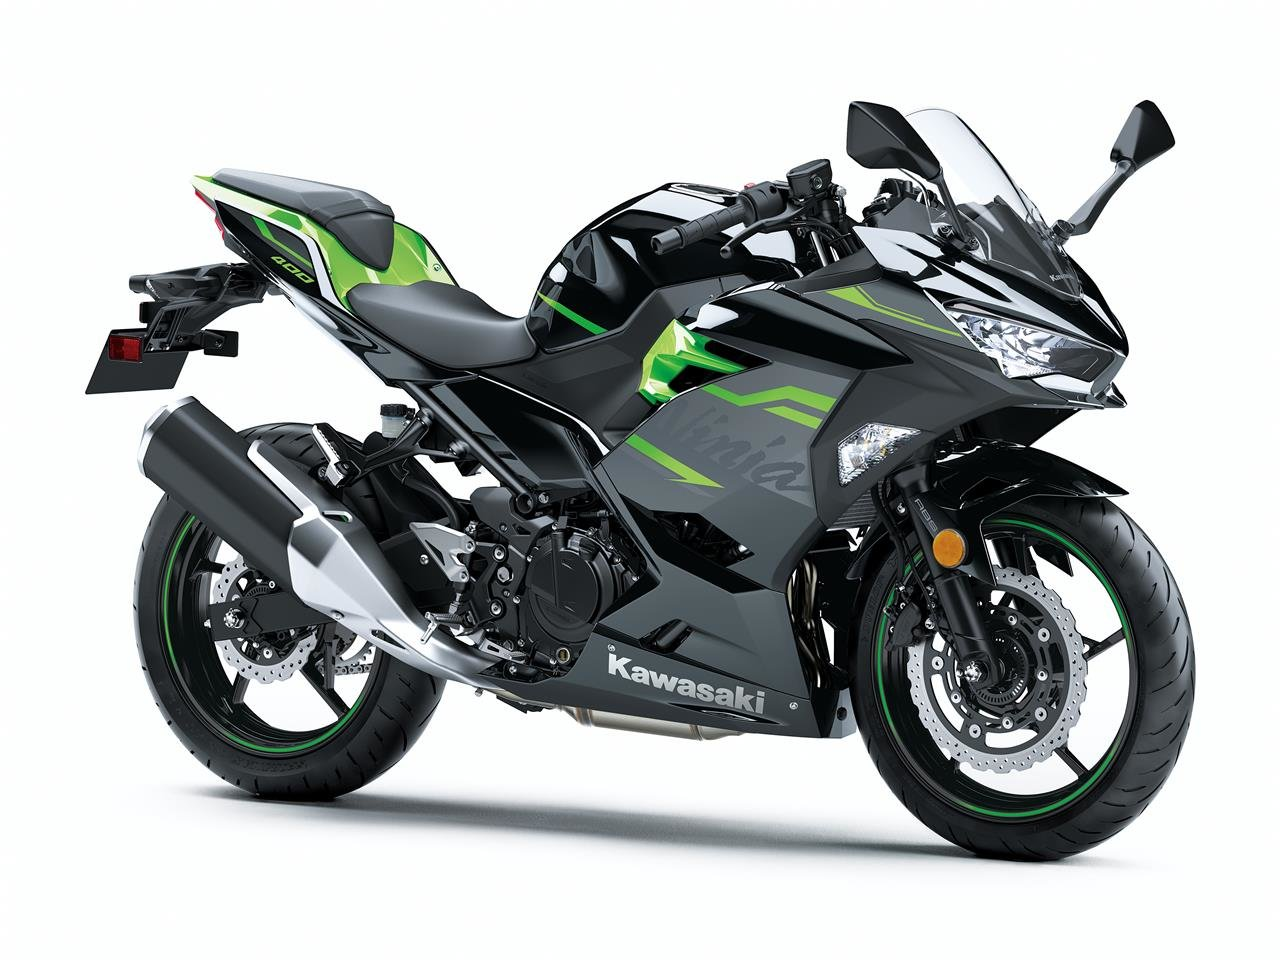 New 2020 Kawasaki Ninja 400 ABS**FREE DELIVERY** For Sale (picture 1 of 5)